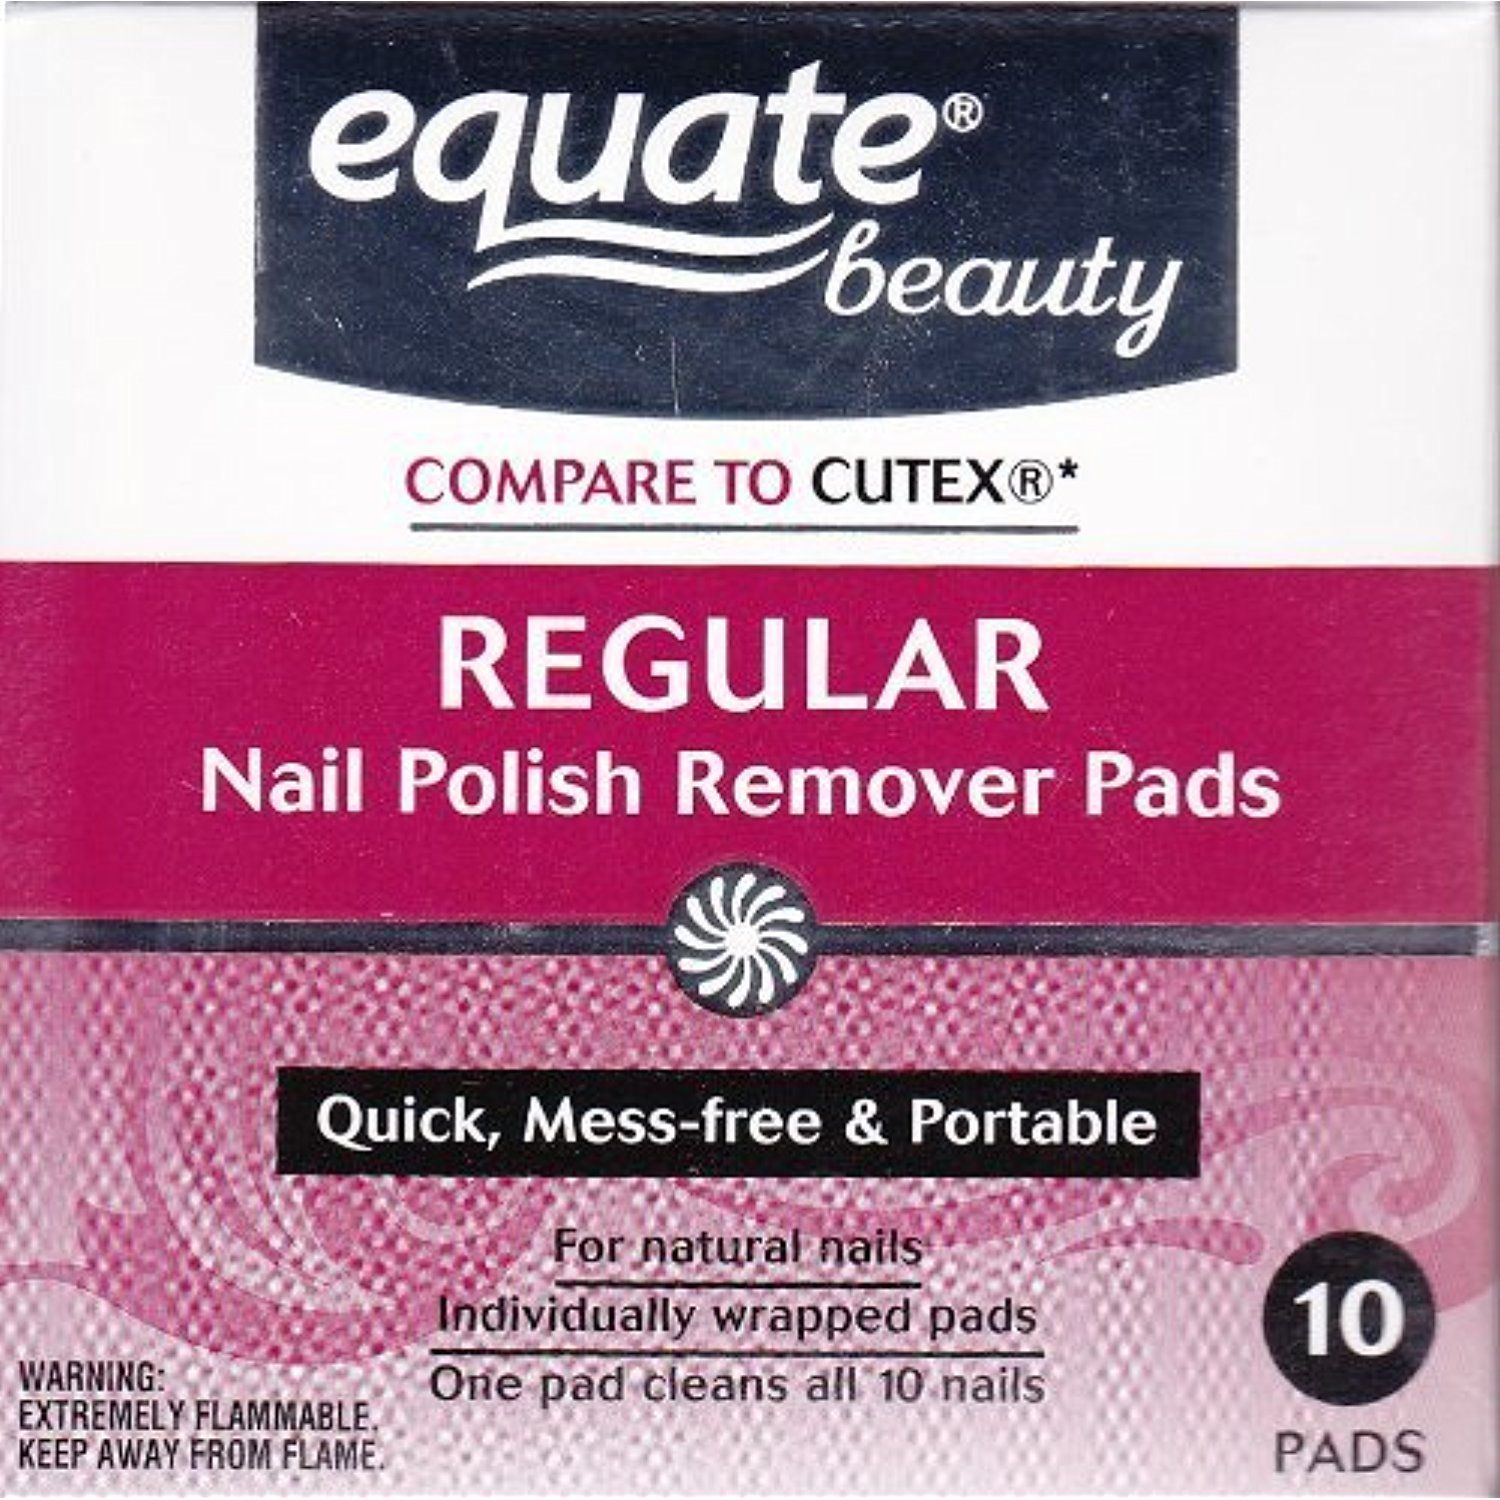 Acetone Regular Nail Polish Remover Pads by Equate 10ct